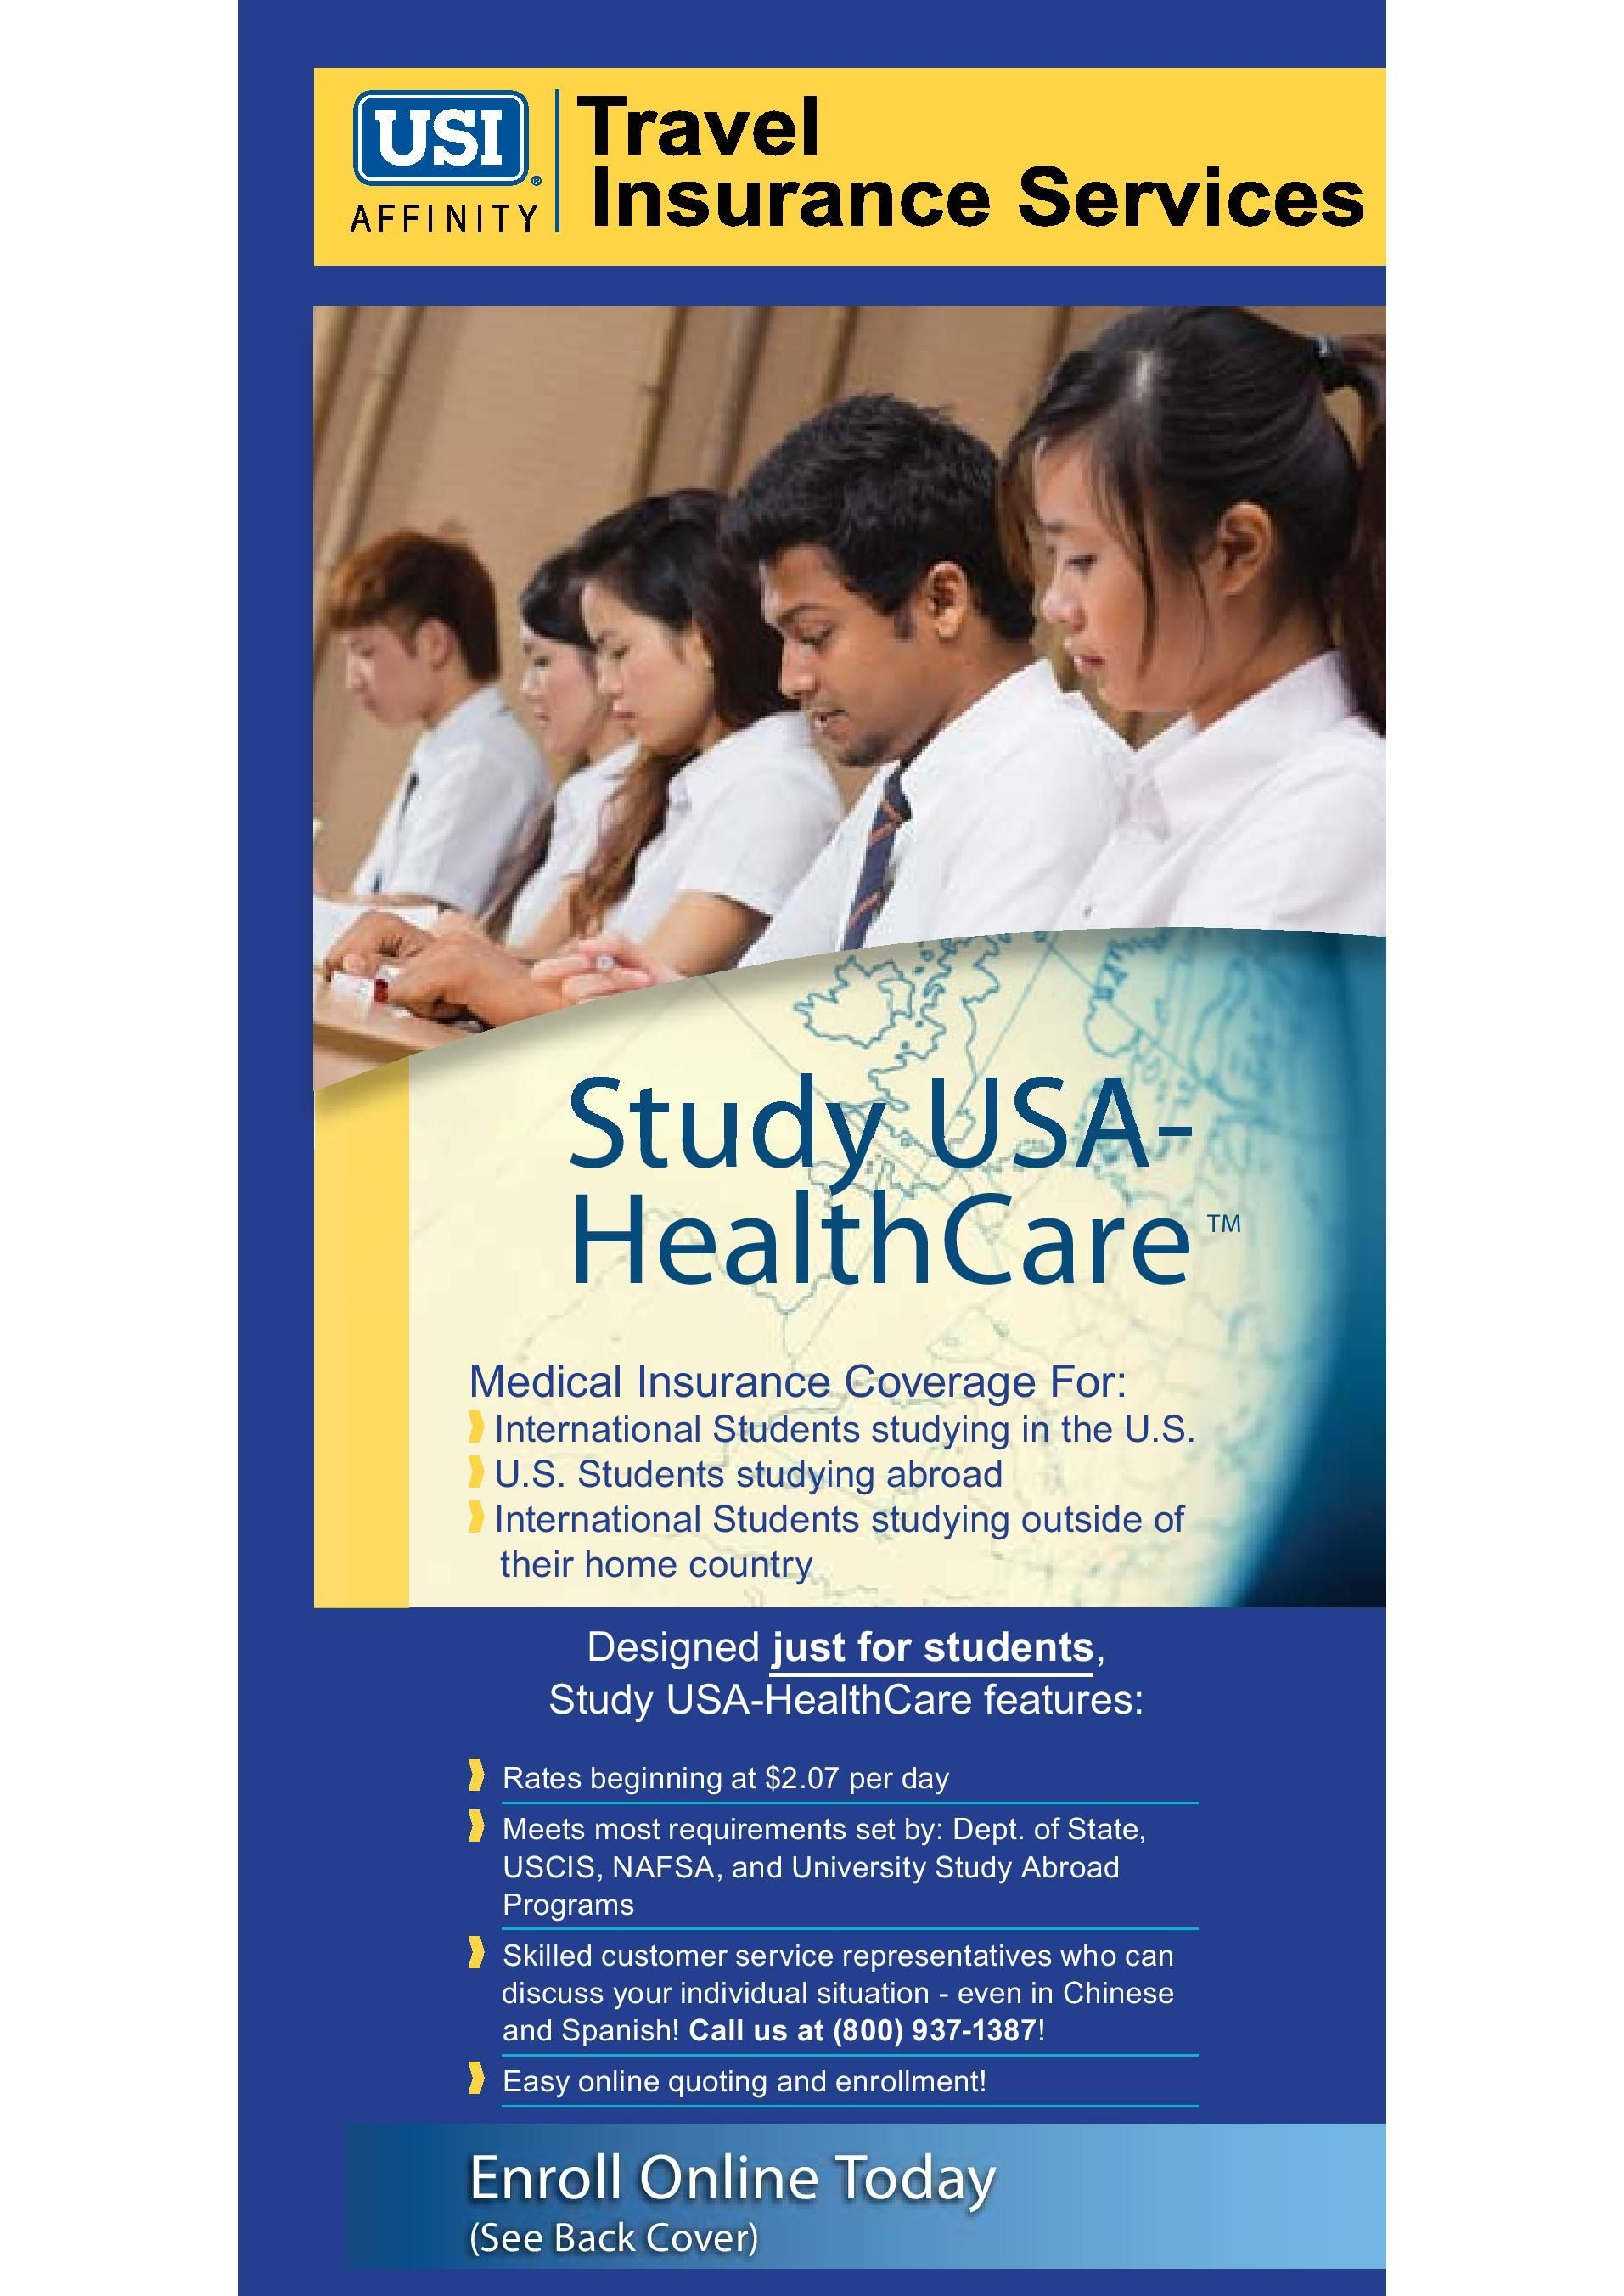 Study Usa Insurance Is An International Student Insurance Plan